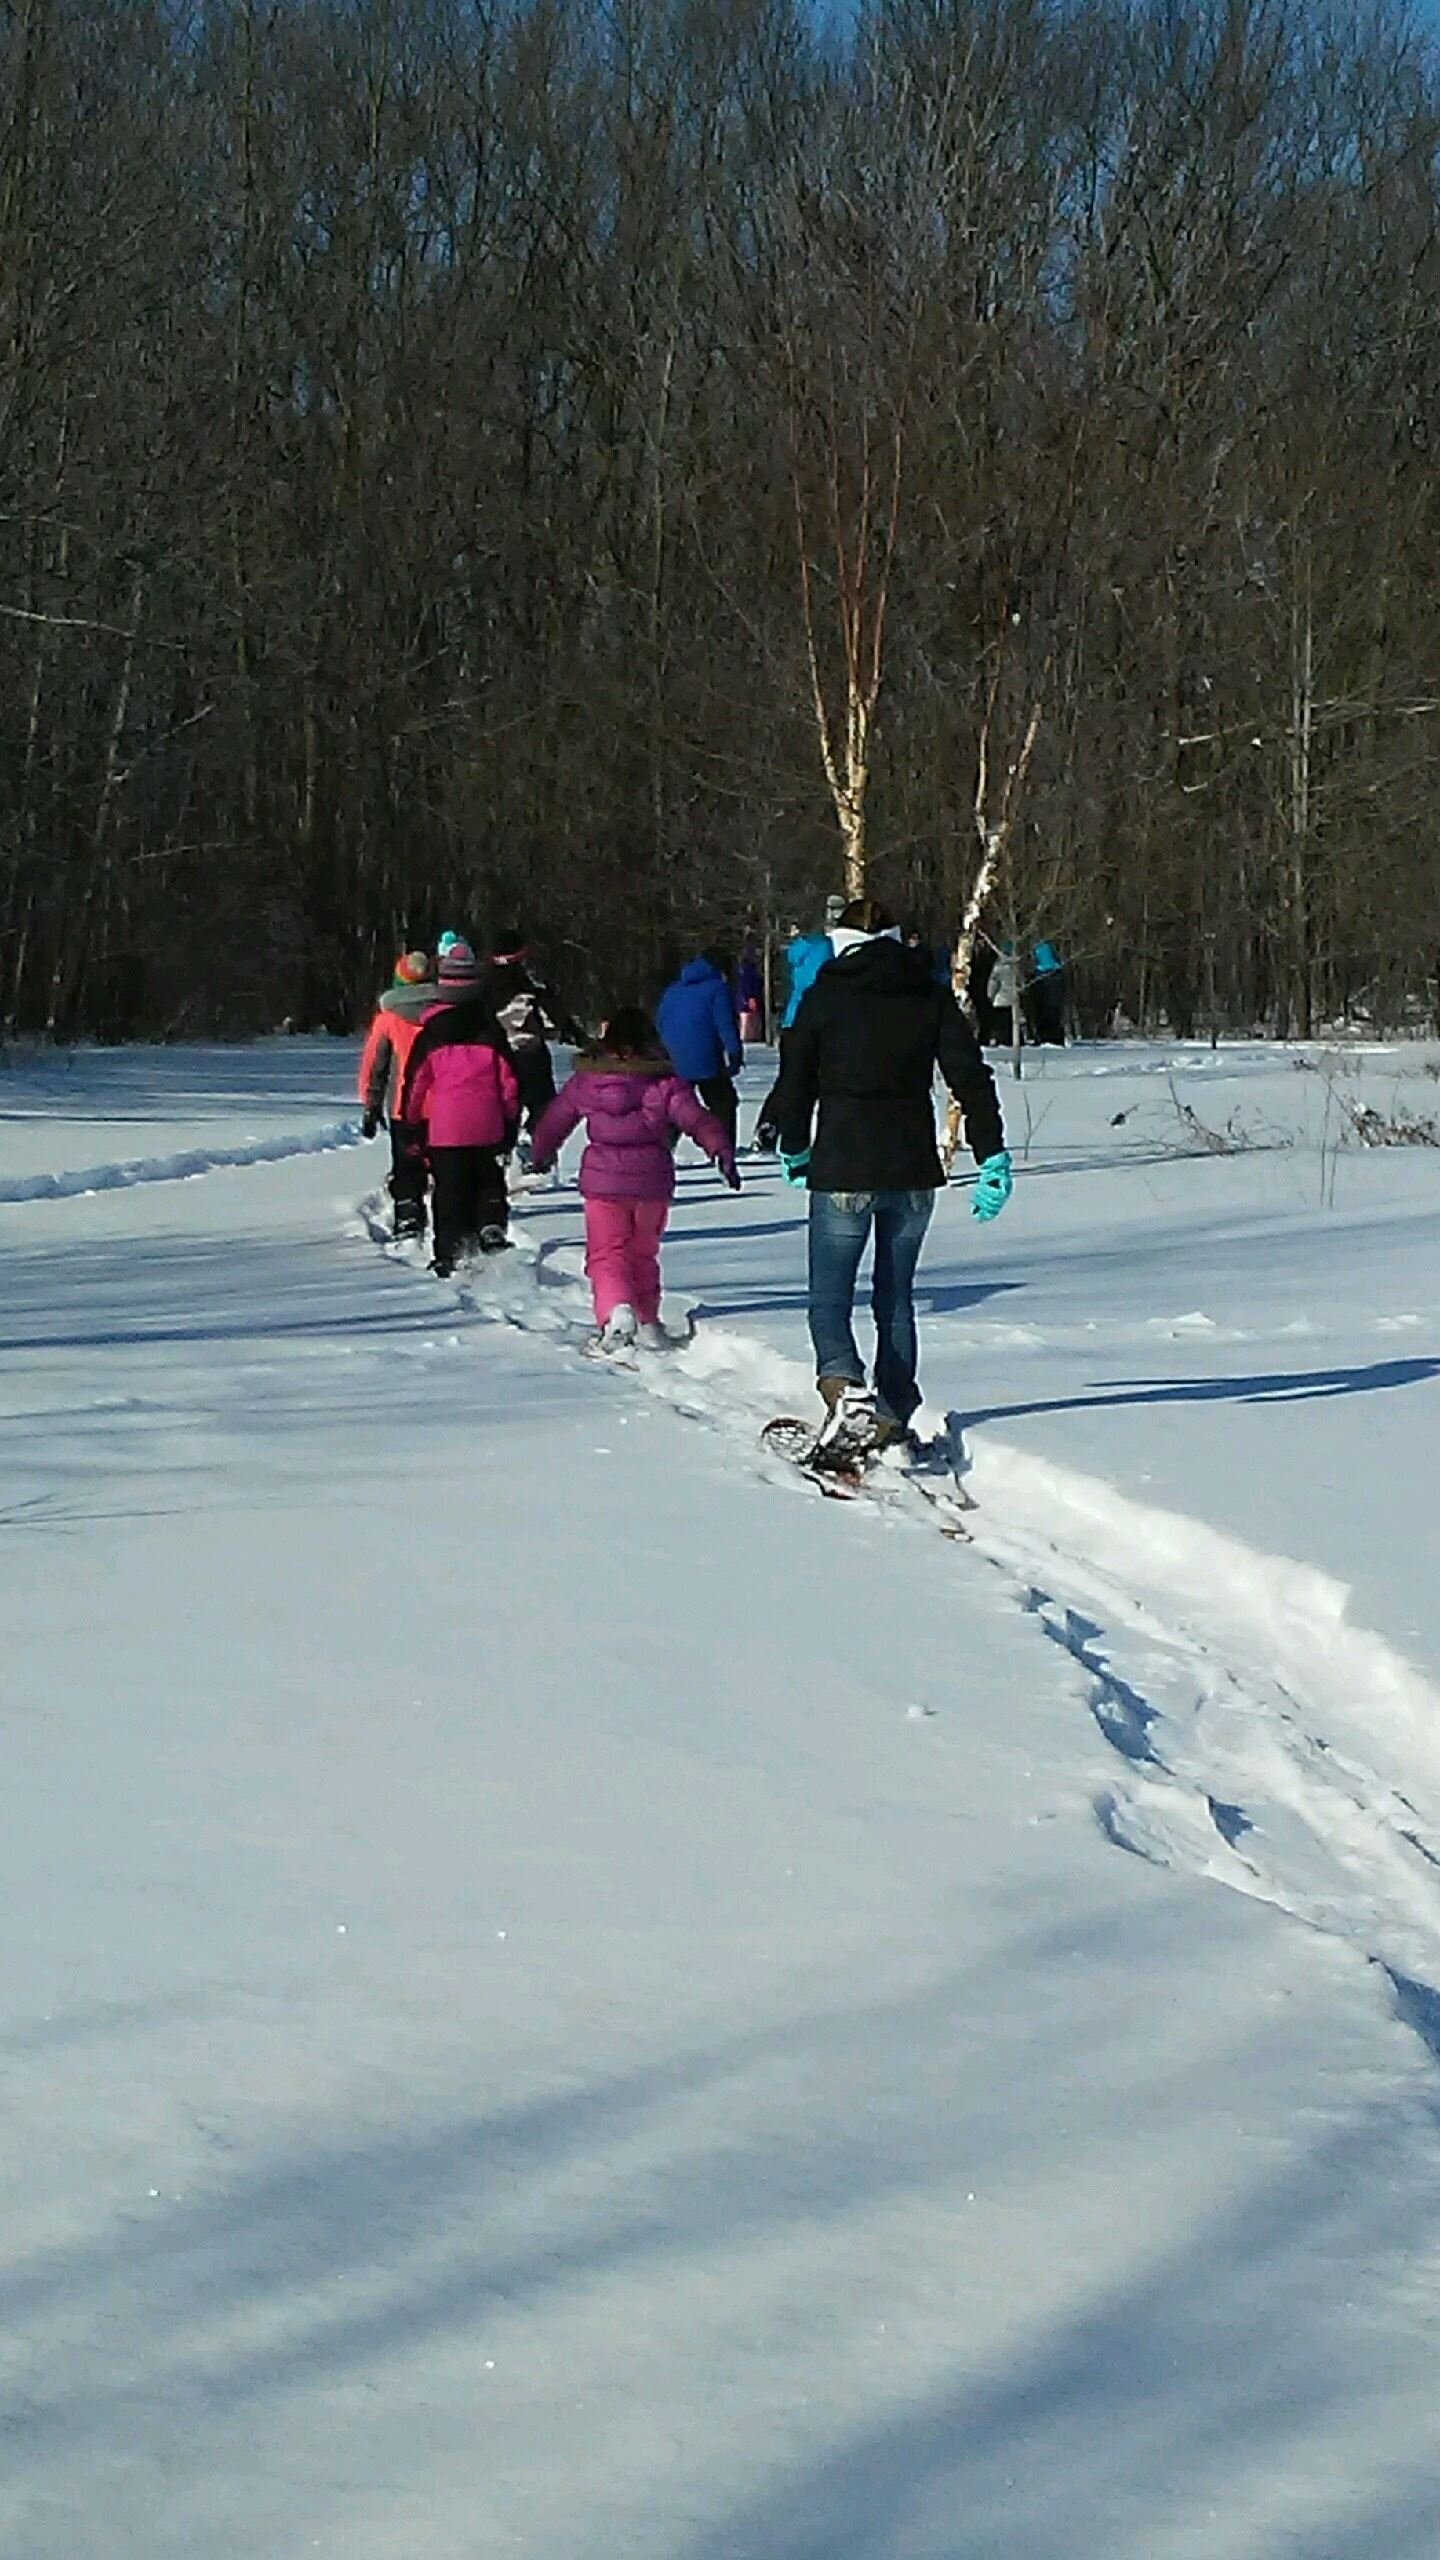 People walking in a line on snowshoes